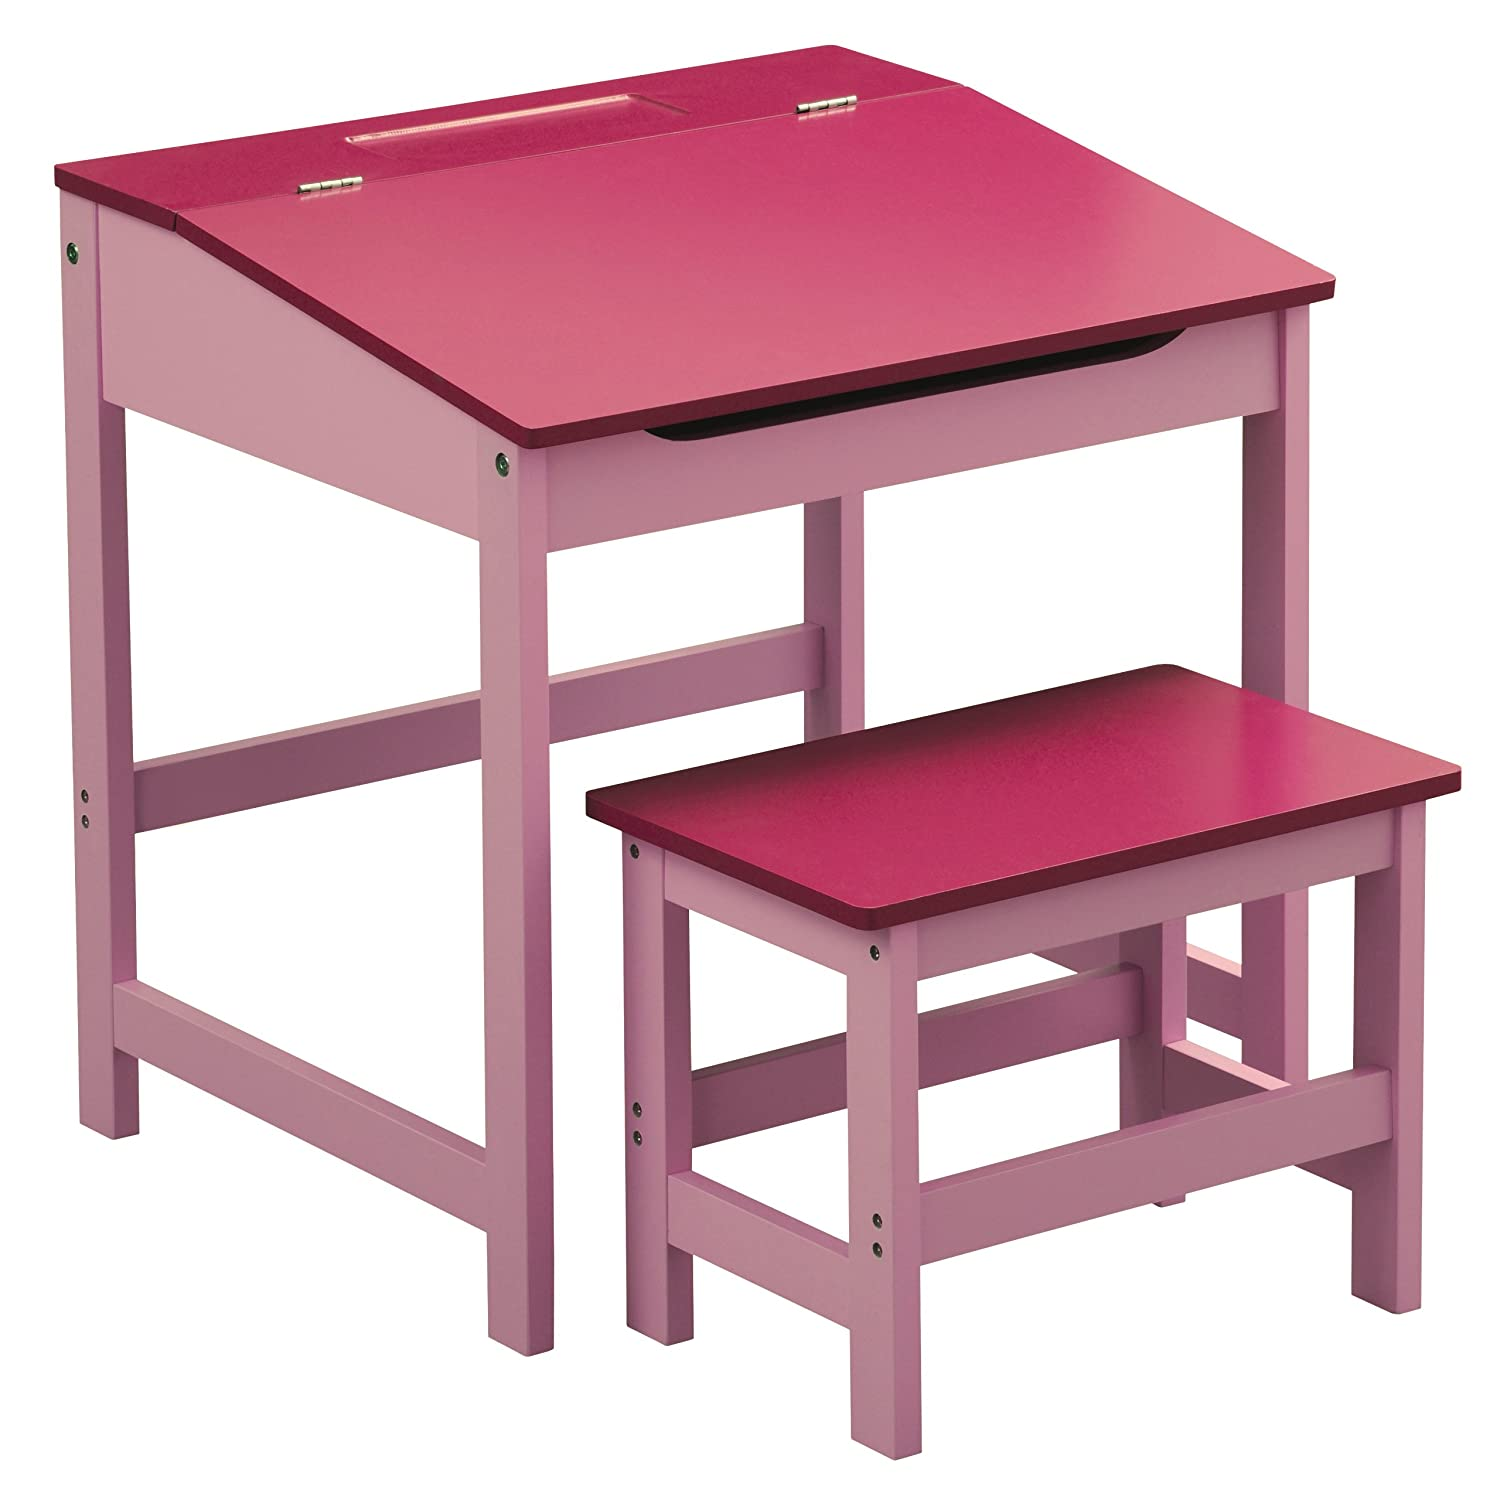 Design Kids Desk premier housewares childrens desk and stool set pink amazon co uk kitchen home